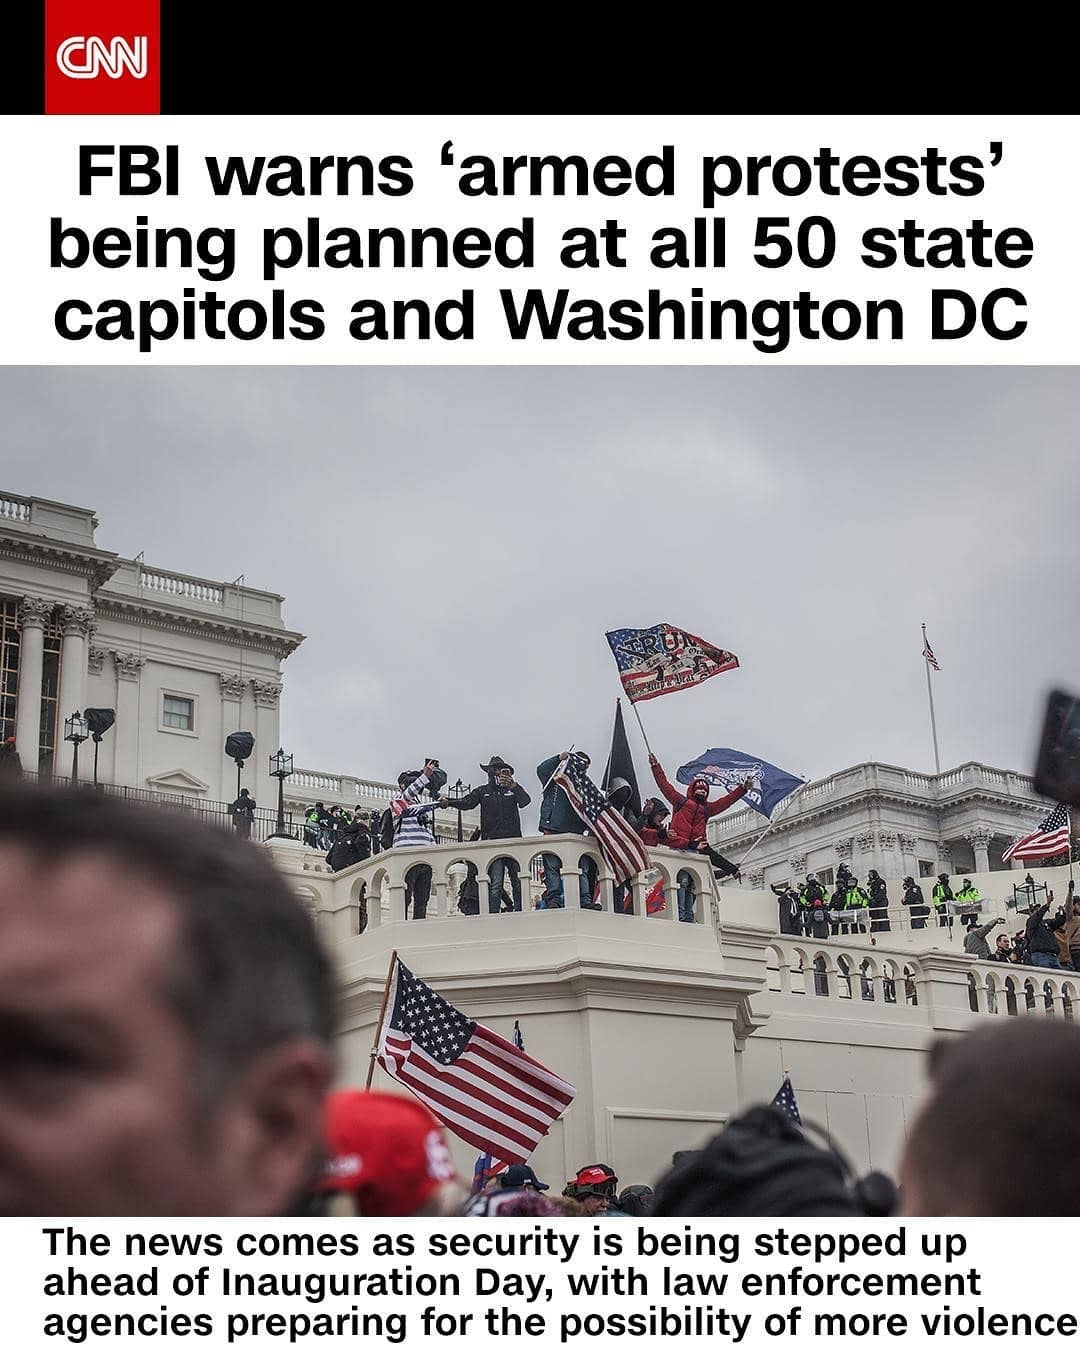 """The FBI has received information indicating """"armed protests"""" are being planned at all 50 state capitols and the US Capitol in Washington, DC in the days leading up to President-elect Joe Biden's inauguration on January 20, according to an internal bulletin obtained by CNN. The news comes after rioters stormed the US Capitol last week leaving five people dead, including a Capitol Police officer."""